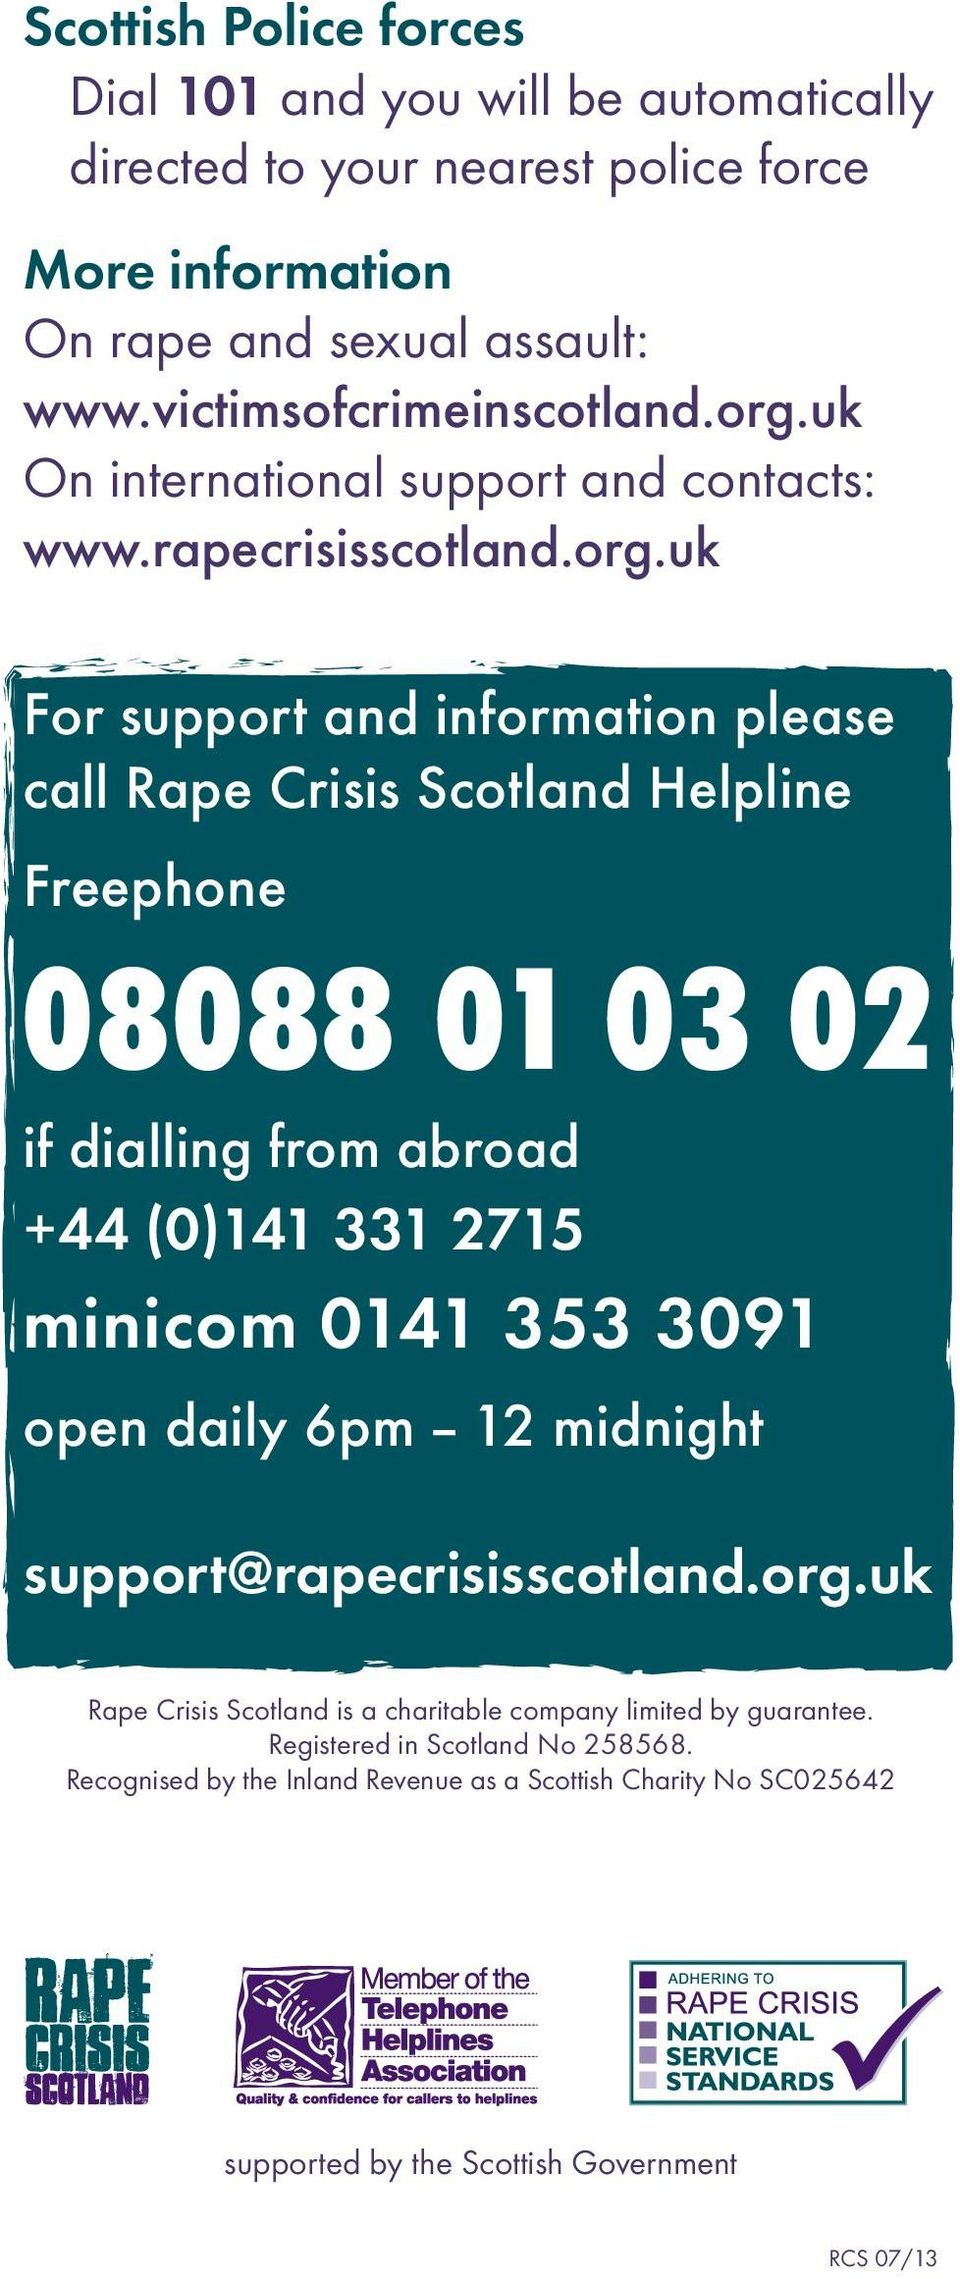 uk On international support and contacts: www.rapecrisisscotland.org.